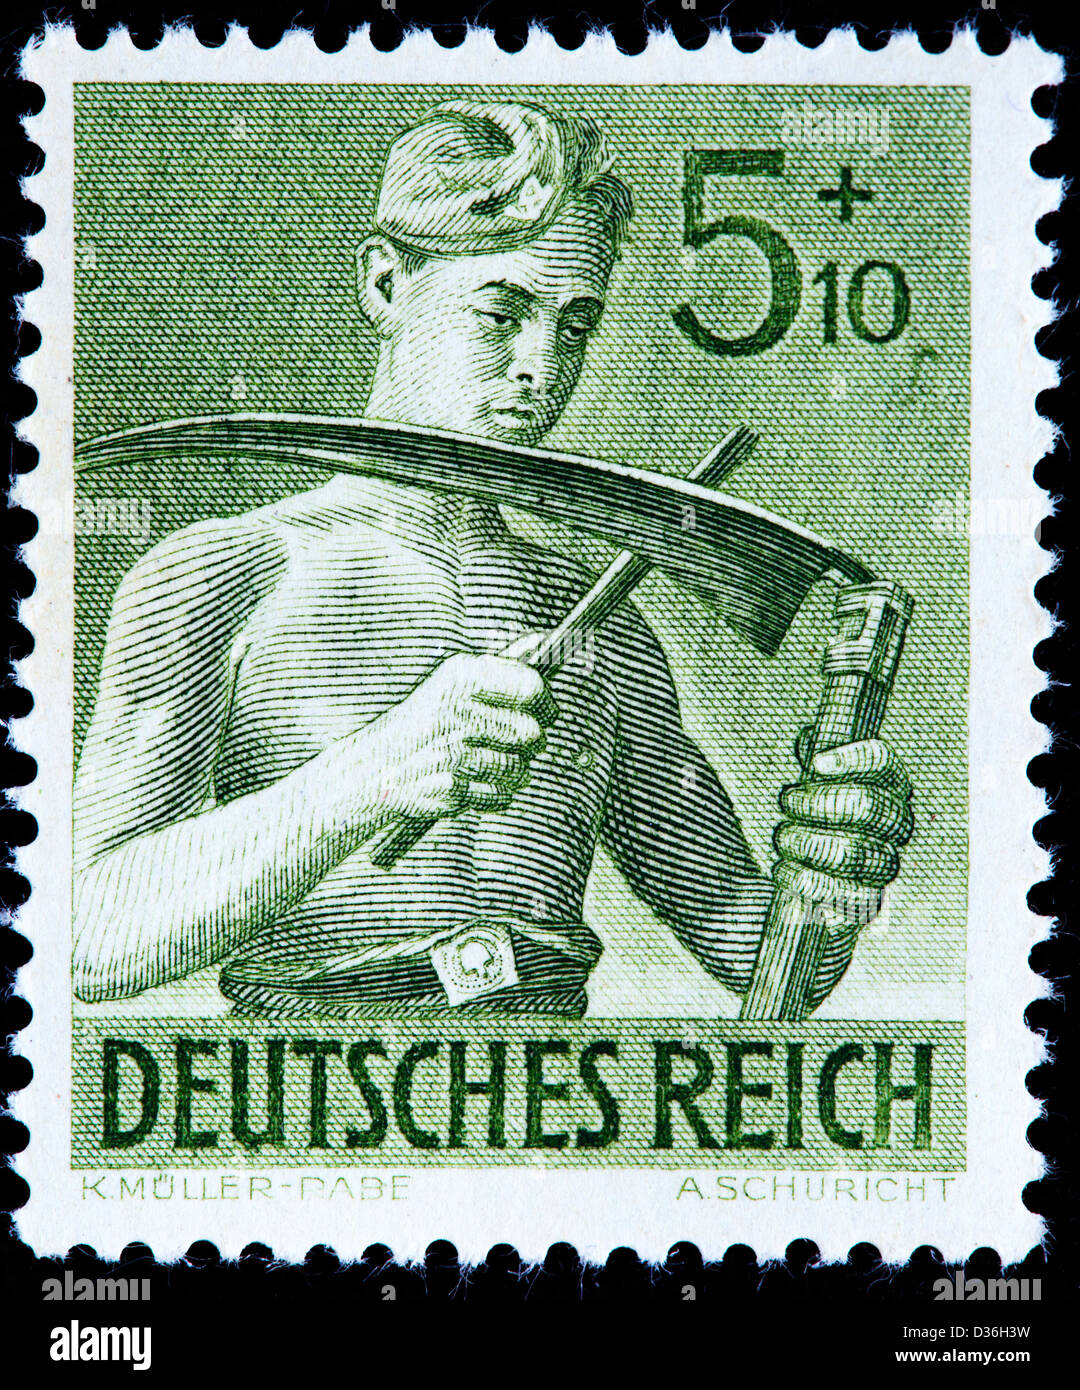 Reich Labor Service Corpsmen, postage stamp, Germany, 1943 - Stock Image